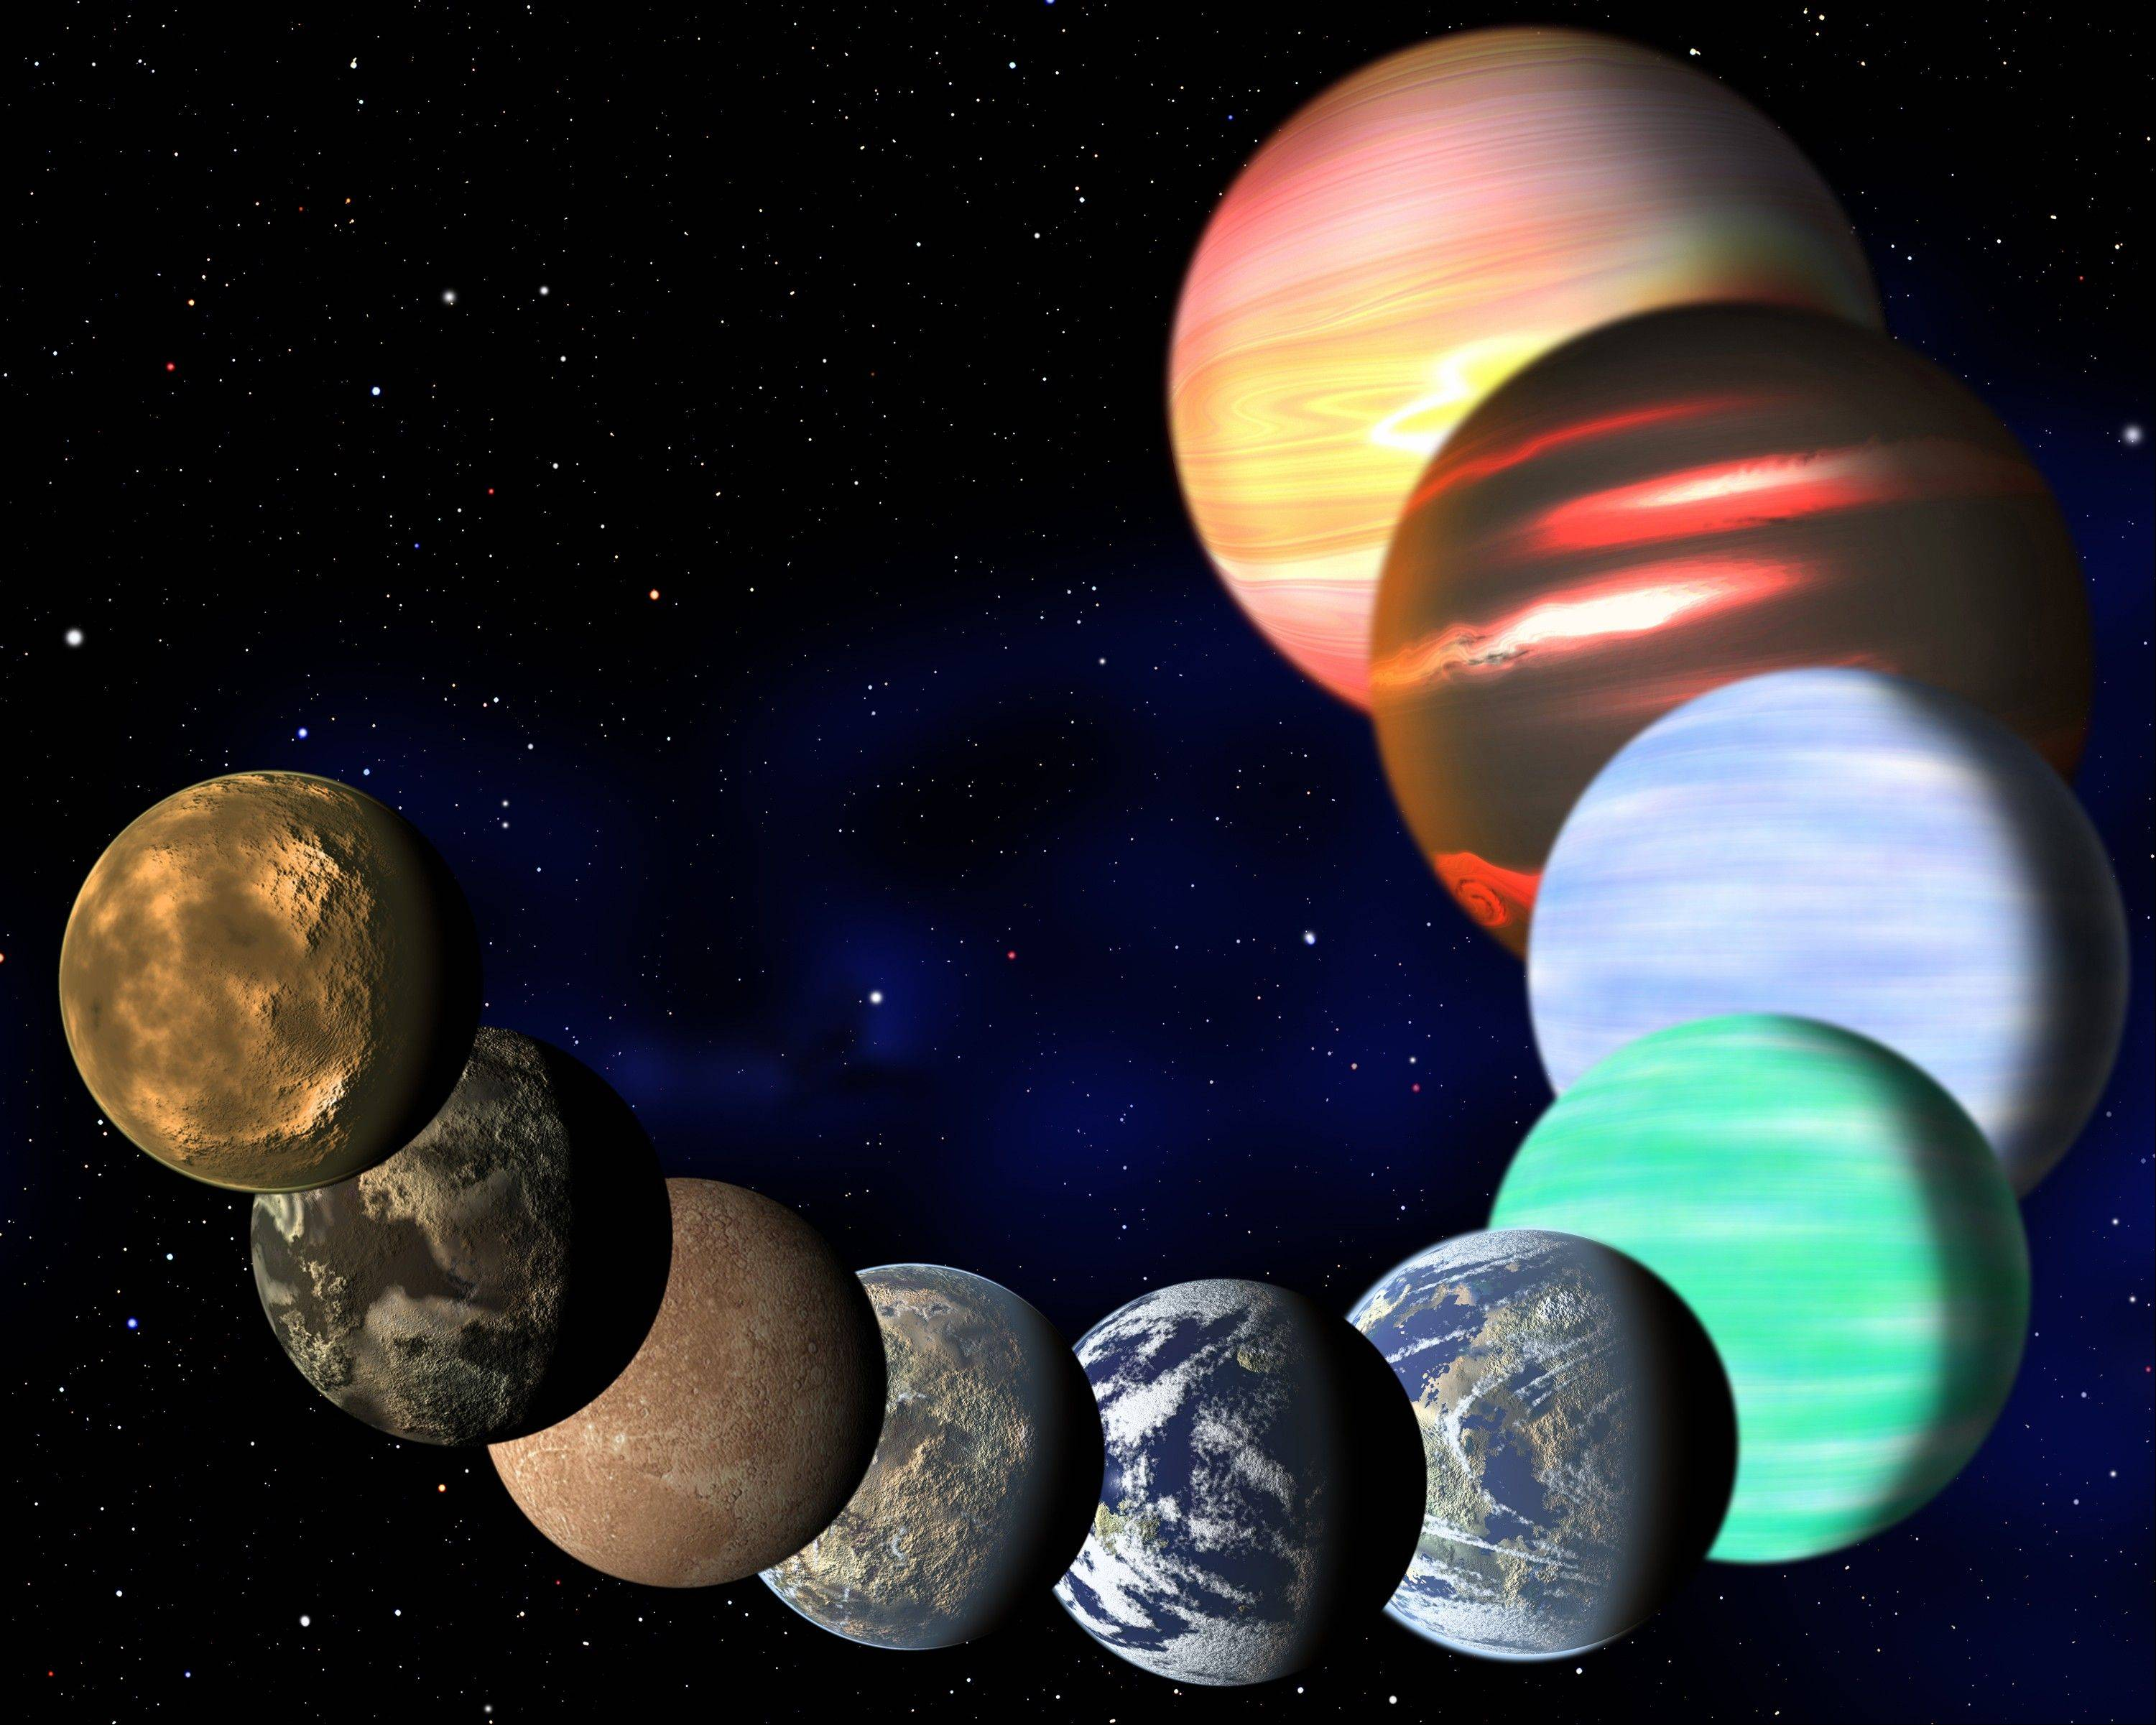 ASSOCIATED PRESS This artist rendering shows the different types of planets in our Milky Way galaxy detected by NASA's Kepler spacecraft. A new analysis of Kepler data found there are at least 17 billion planets the size of Earth.